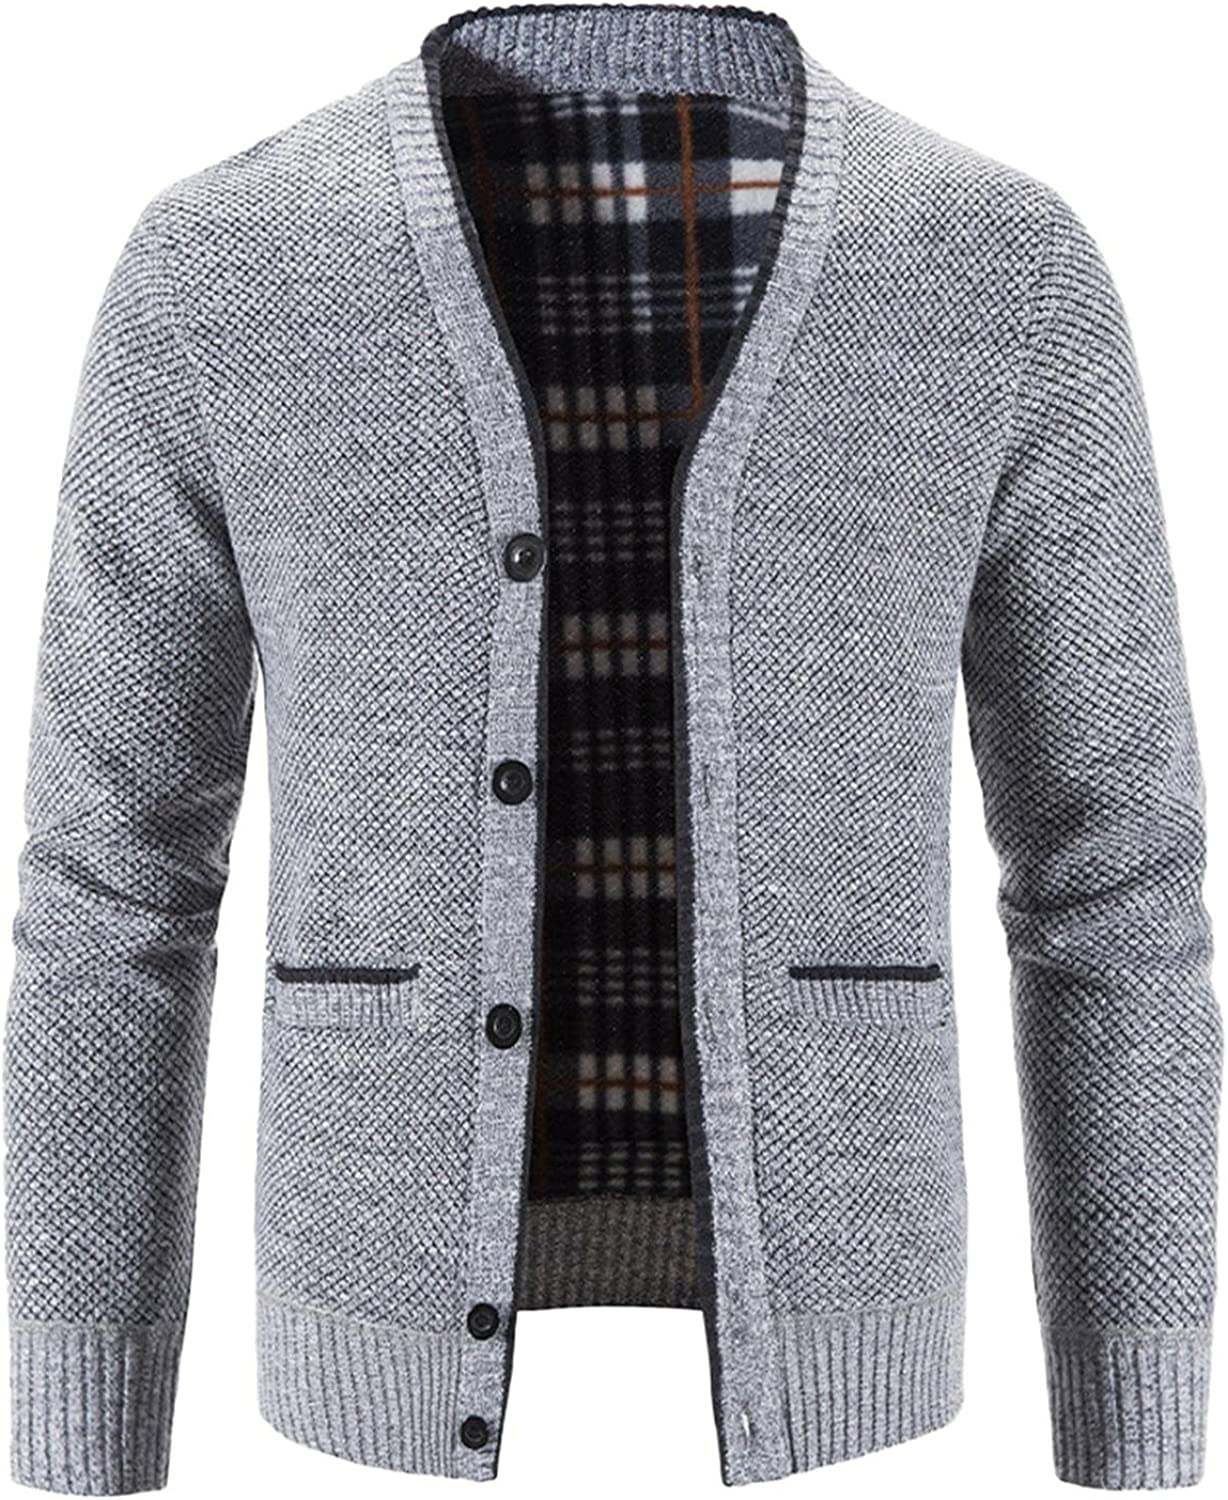 Huangse Mens Shawl Collar Cable Rib Knitted Button Closure Casual Winter Chunky Thermal Long Sleeve Solid Cardigan Sweater